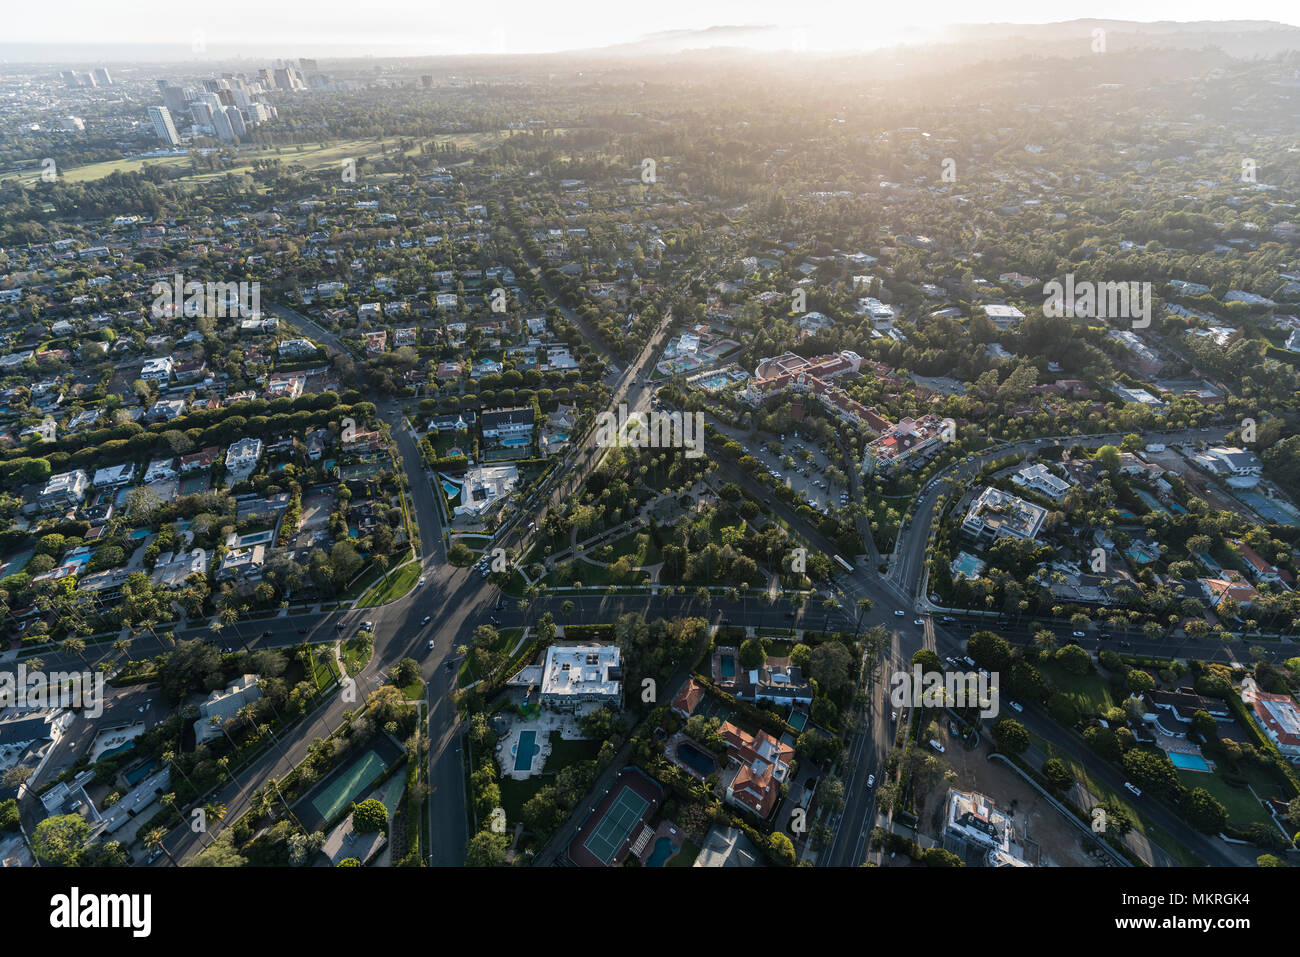 Beverly Hills, California, USA - April 18, 2017:  Afternoon aerial view of intersections near Will Rogers Memorial Park and the Beverly Hills Hotel. - Stock Image